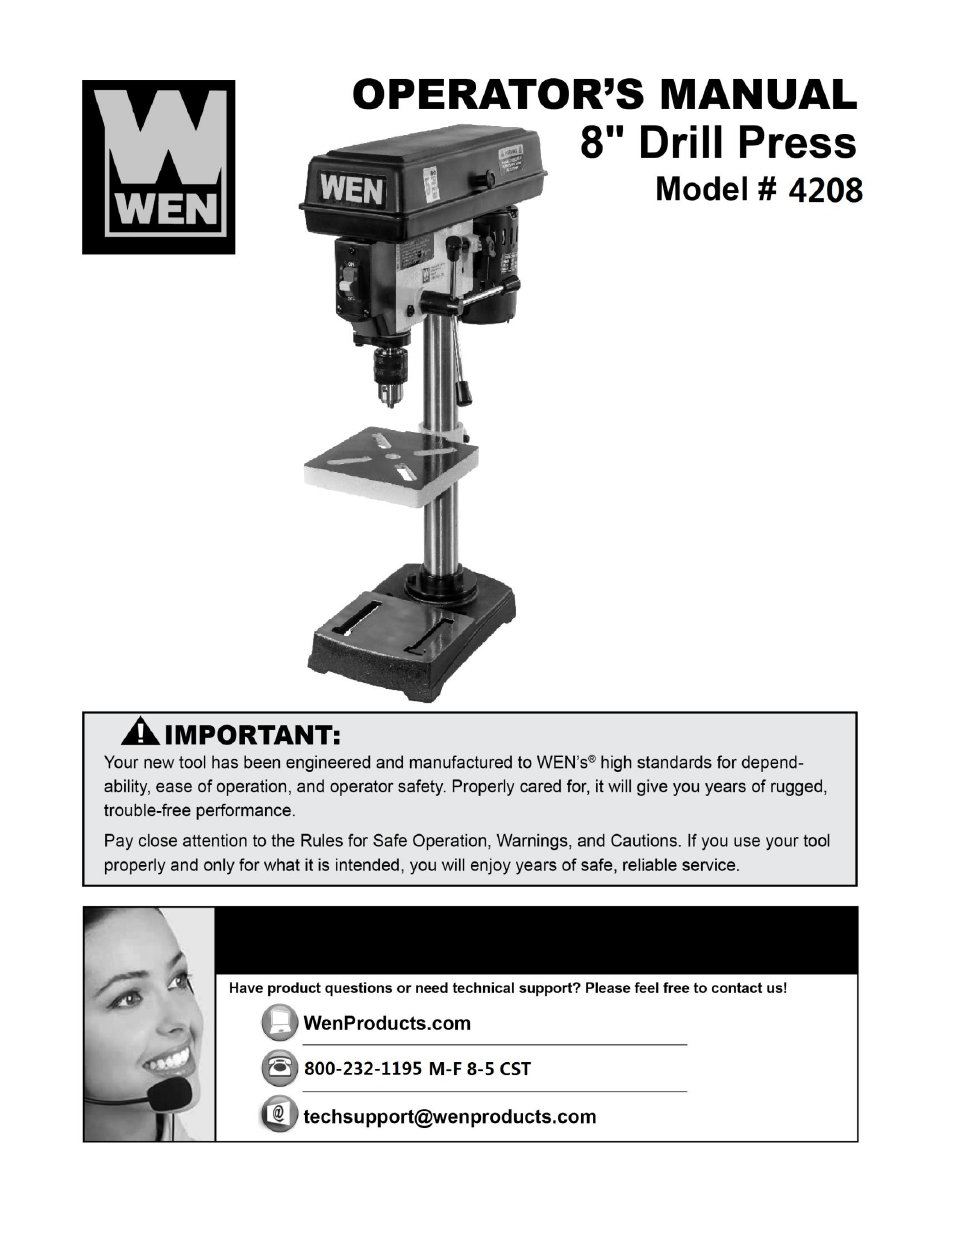 WEN 4208 8 inch 5 Sd Drill Press User Manual | 22 pages Drill Press Wiring Diagram on drill press safety, drill press controls, drill press transmission, drill press plug, drill press tools, drill press forum, drill press frame, drill press maintenance, drill press accessories, drill press switch, drill press assembly, drill press lighting, drill press capacitor, drill press specifications, drill press dimensions, drill press operation, drill press lubrication system, drill press exploded view, drill press cabinet,